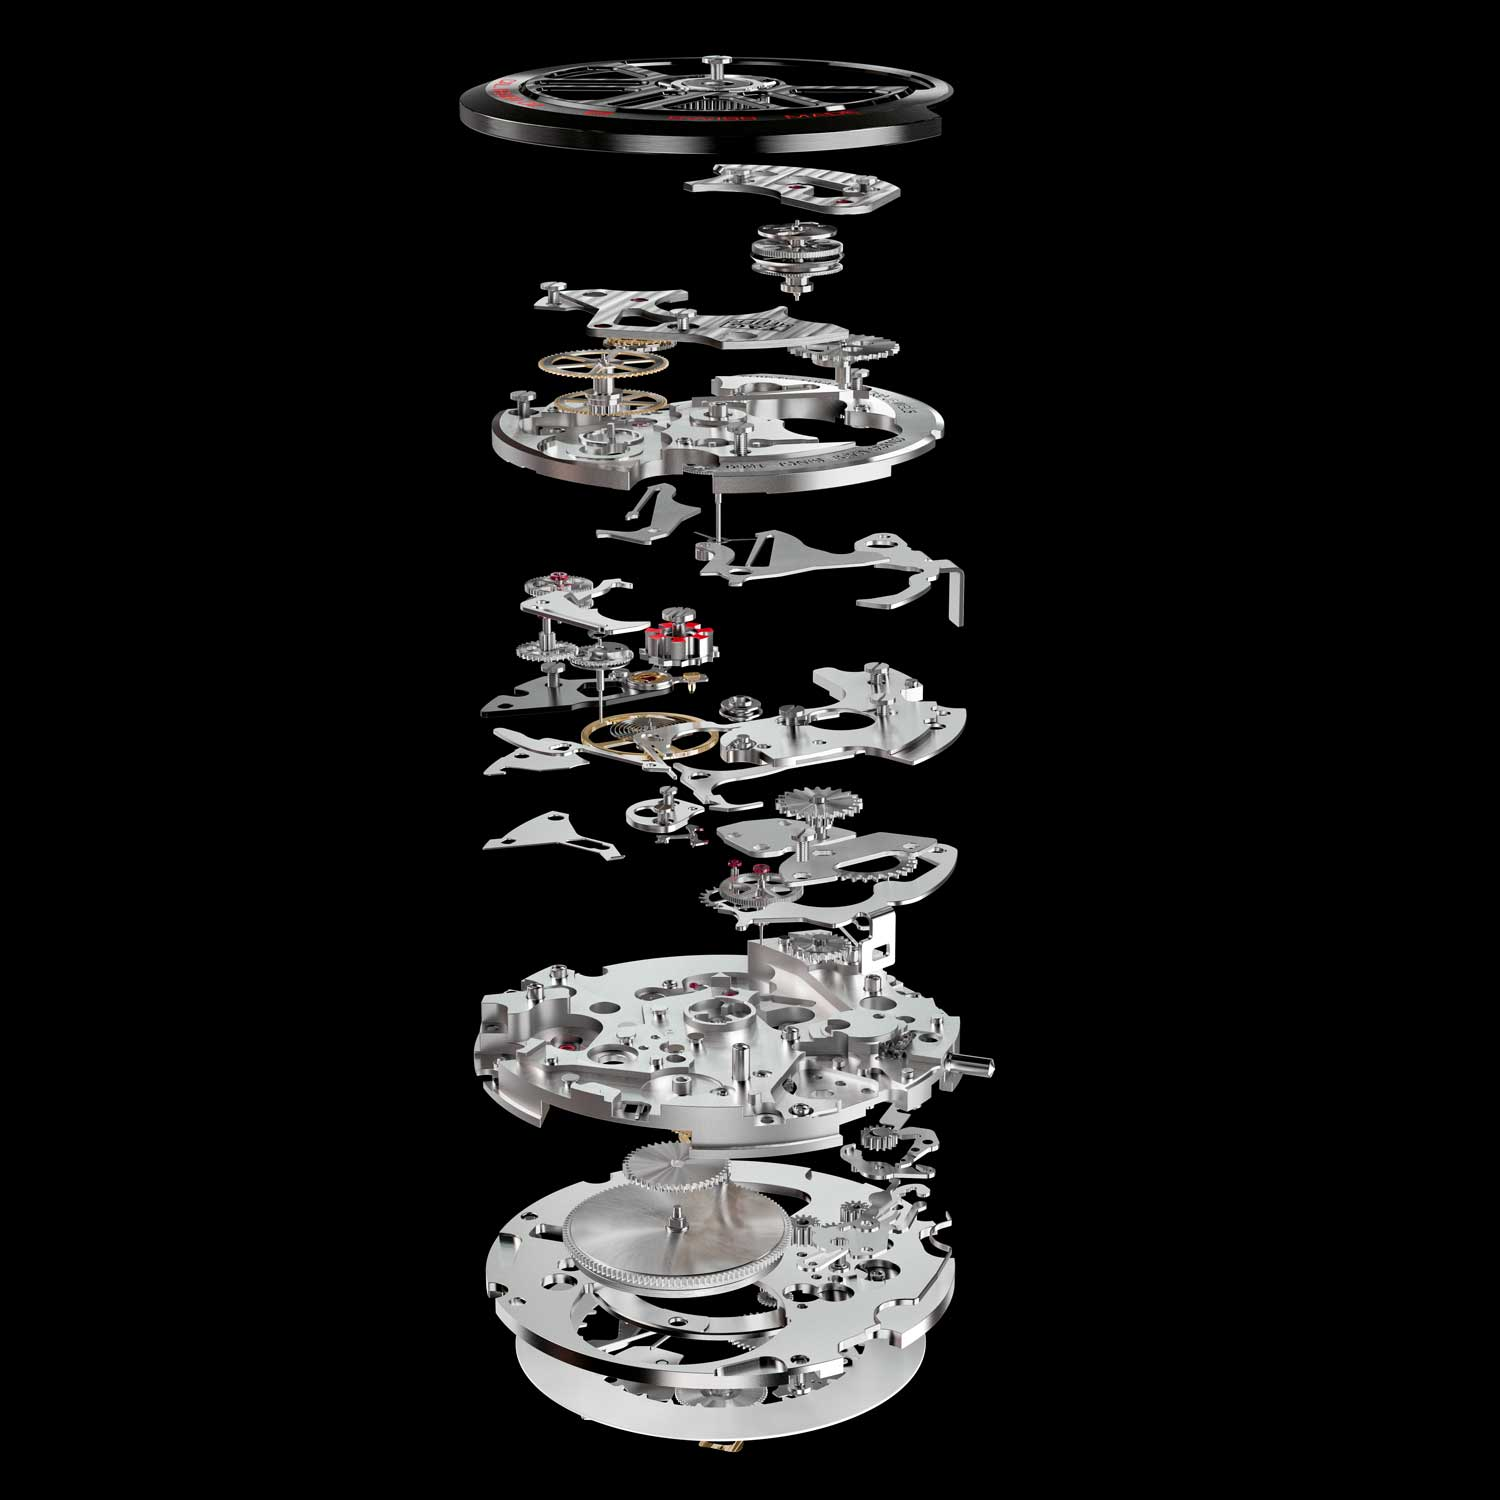 An exploded view of the TAG Heuer's HEUER 02 chronograph movement, which employs a column wheel control and vertical engagement formula.